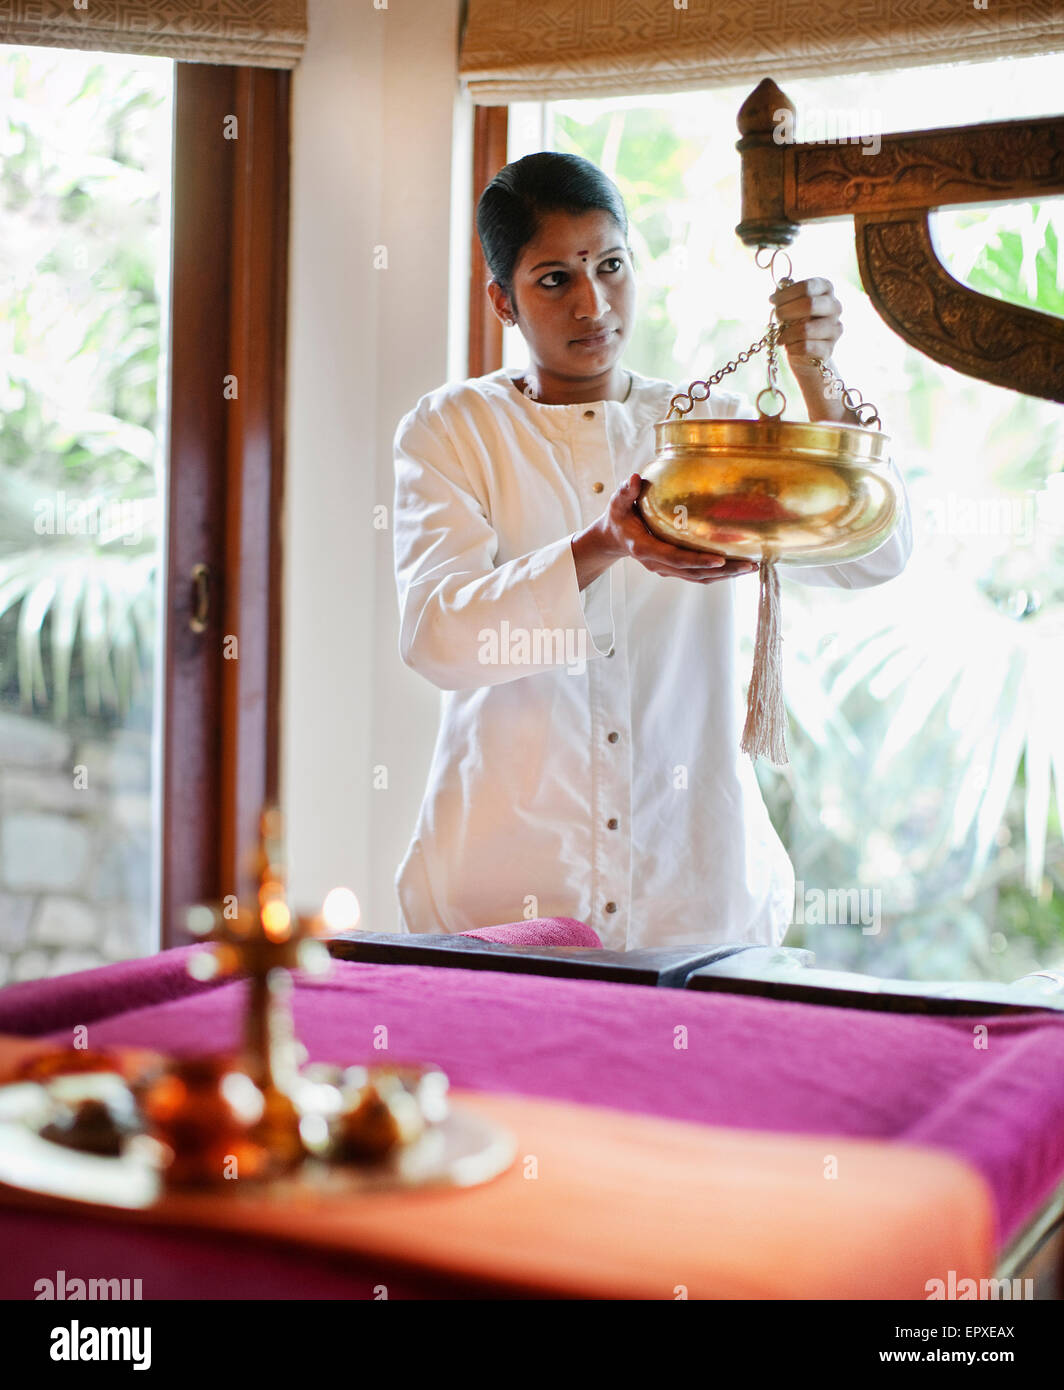 A spa therapist prepares the Sariva Room for a Shirodhara Ayurvedic Treatment at Ananda Spa, Ananda in the Himalayas. - Stock Image